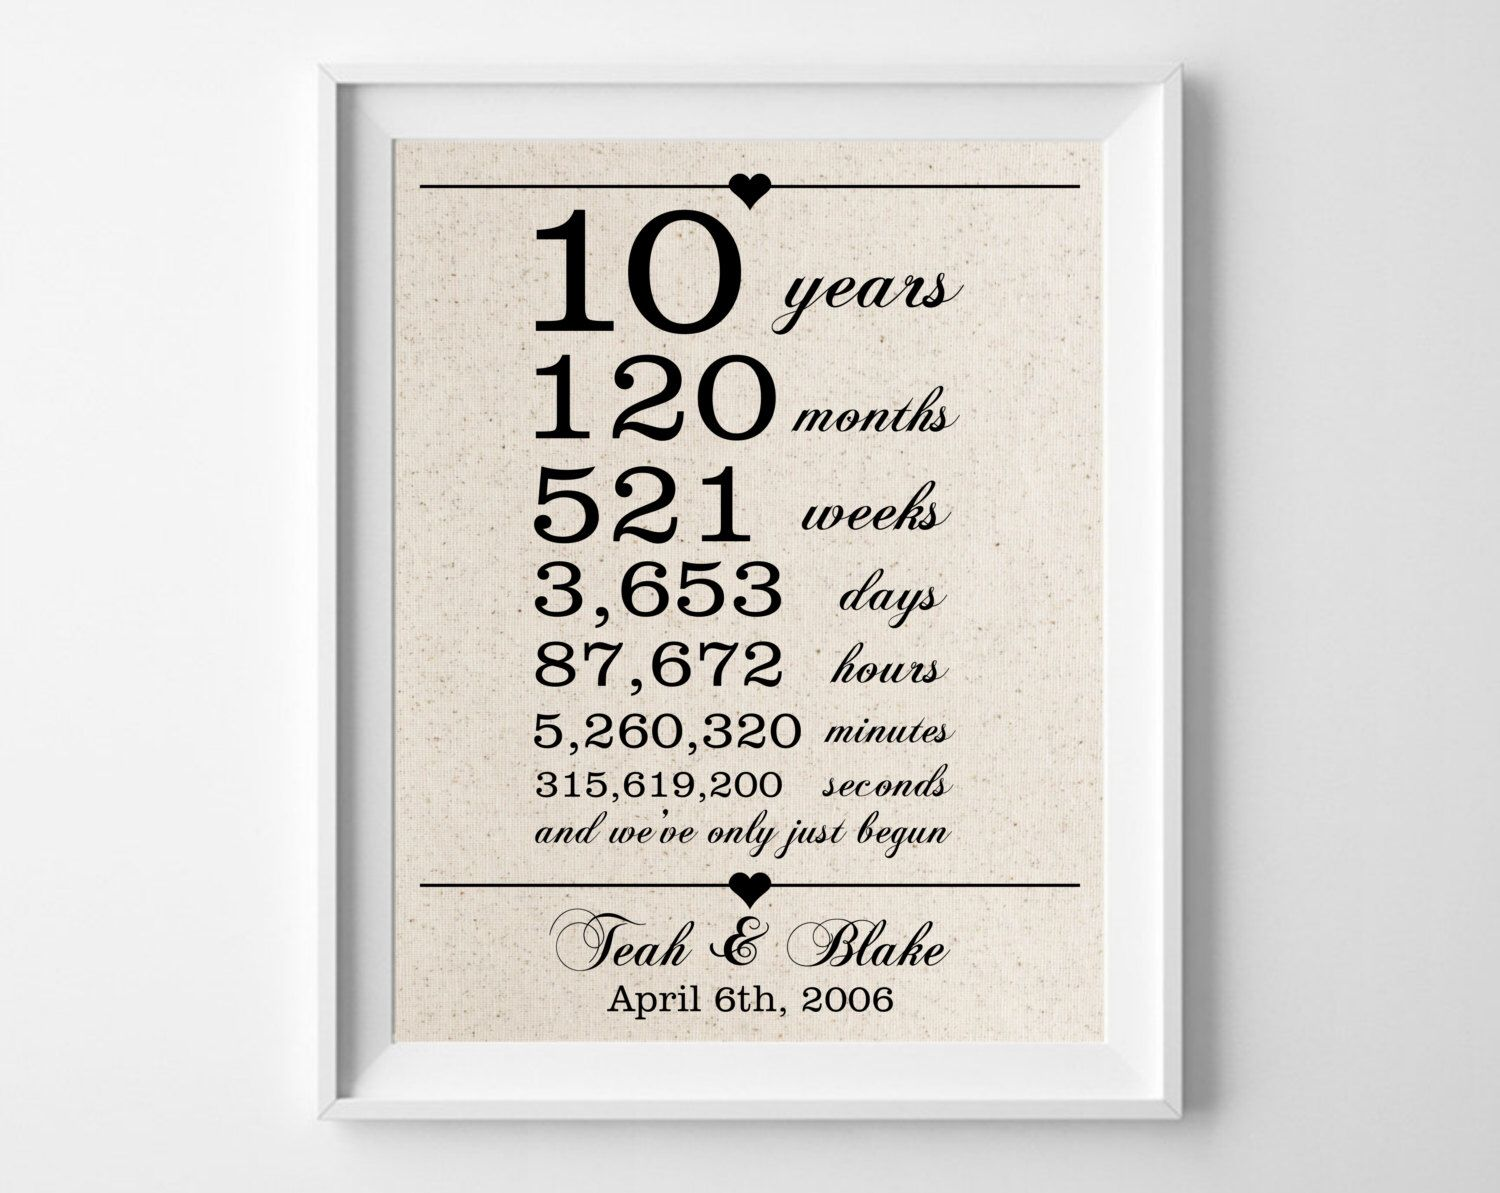 10 Years Together Cotton Gift Print 10th Anniversary Gifts 10 Year Anniversary Gift For Husband Wife 10th W Podarki Muzhu Yubilej Muzha Romanticheskie Idei